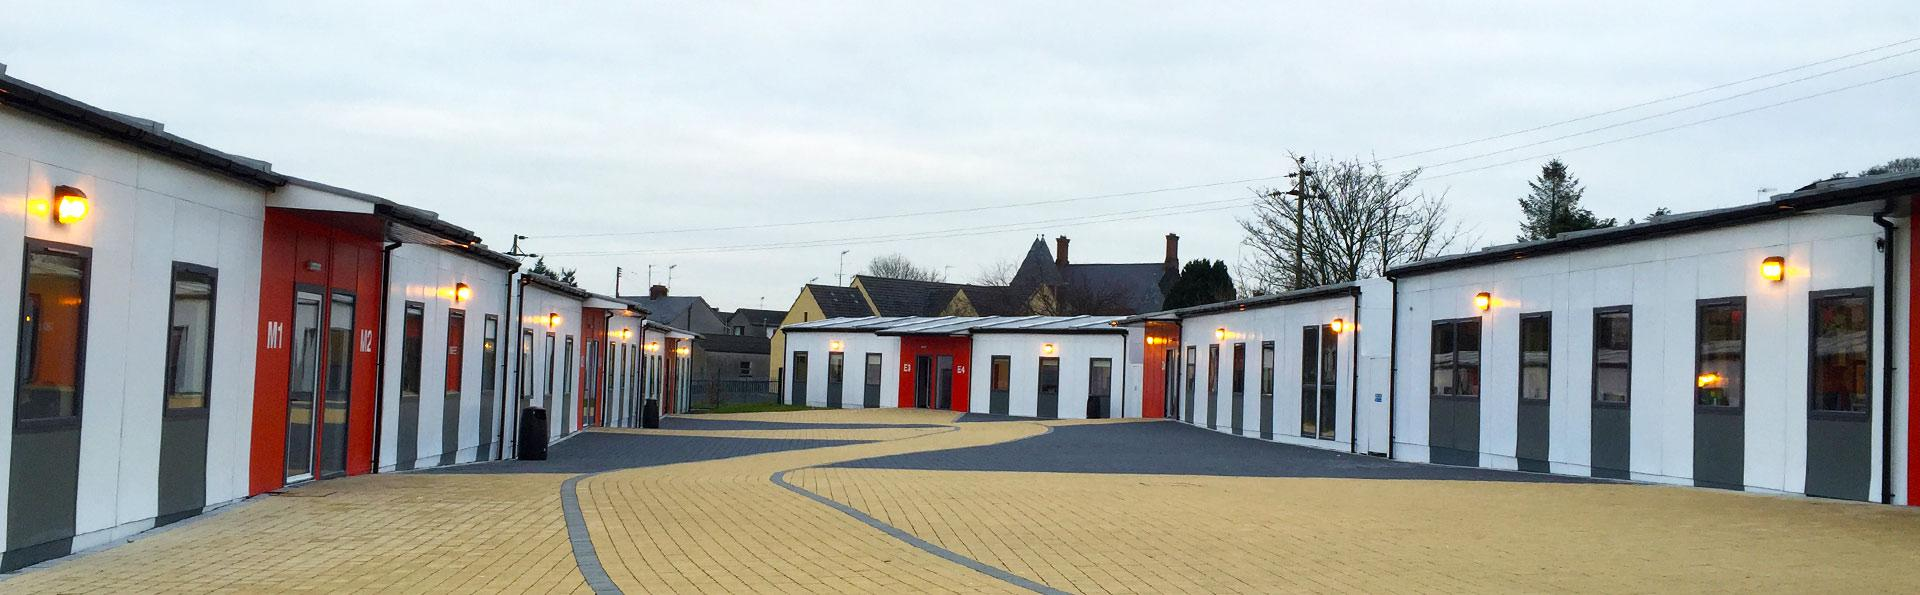 Instaspace provided a solution for Rainey Endowed School Co Derry